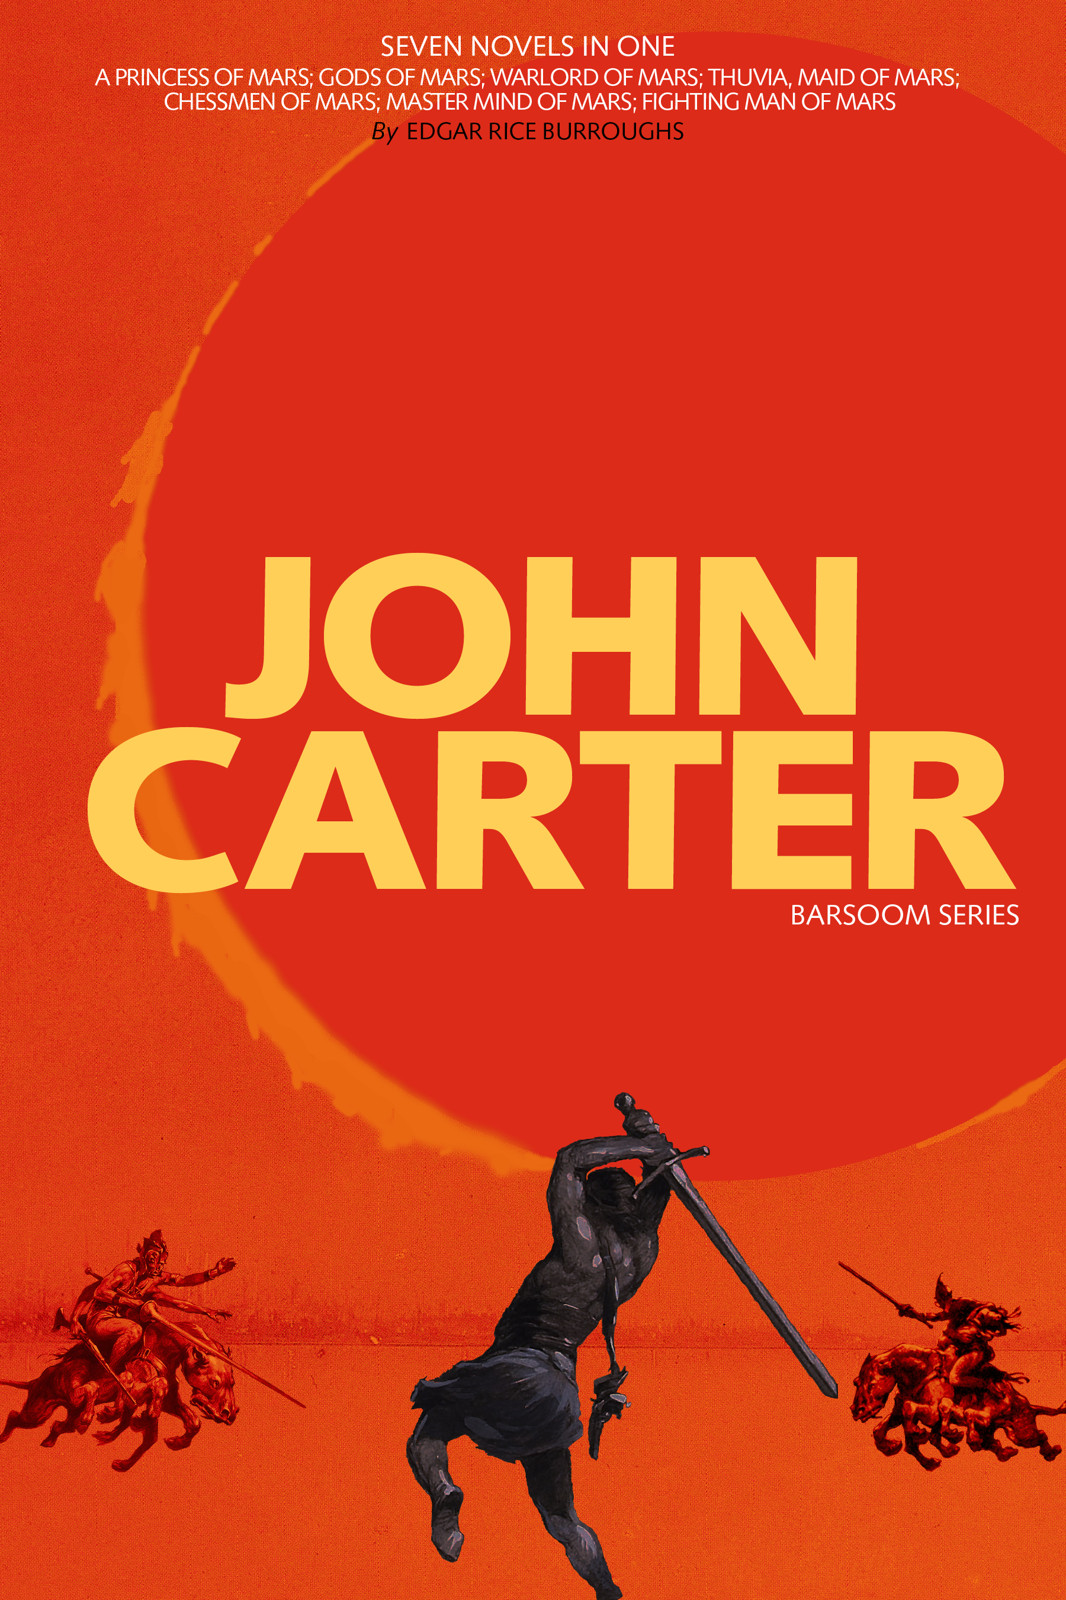 John Carter: Barsoom Series (7 Novels) A Princess of Mars; Gods of Mars; Warlord of Mars; Thuvia, Maid of Mars; Chessmen of Mars; Master Mind of Mars; Fighting Man of Mars (Science Fiction) By: Edgar Rice Burroughs